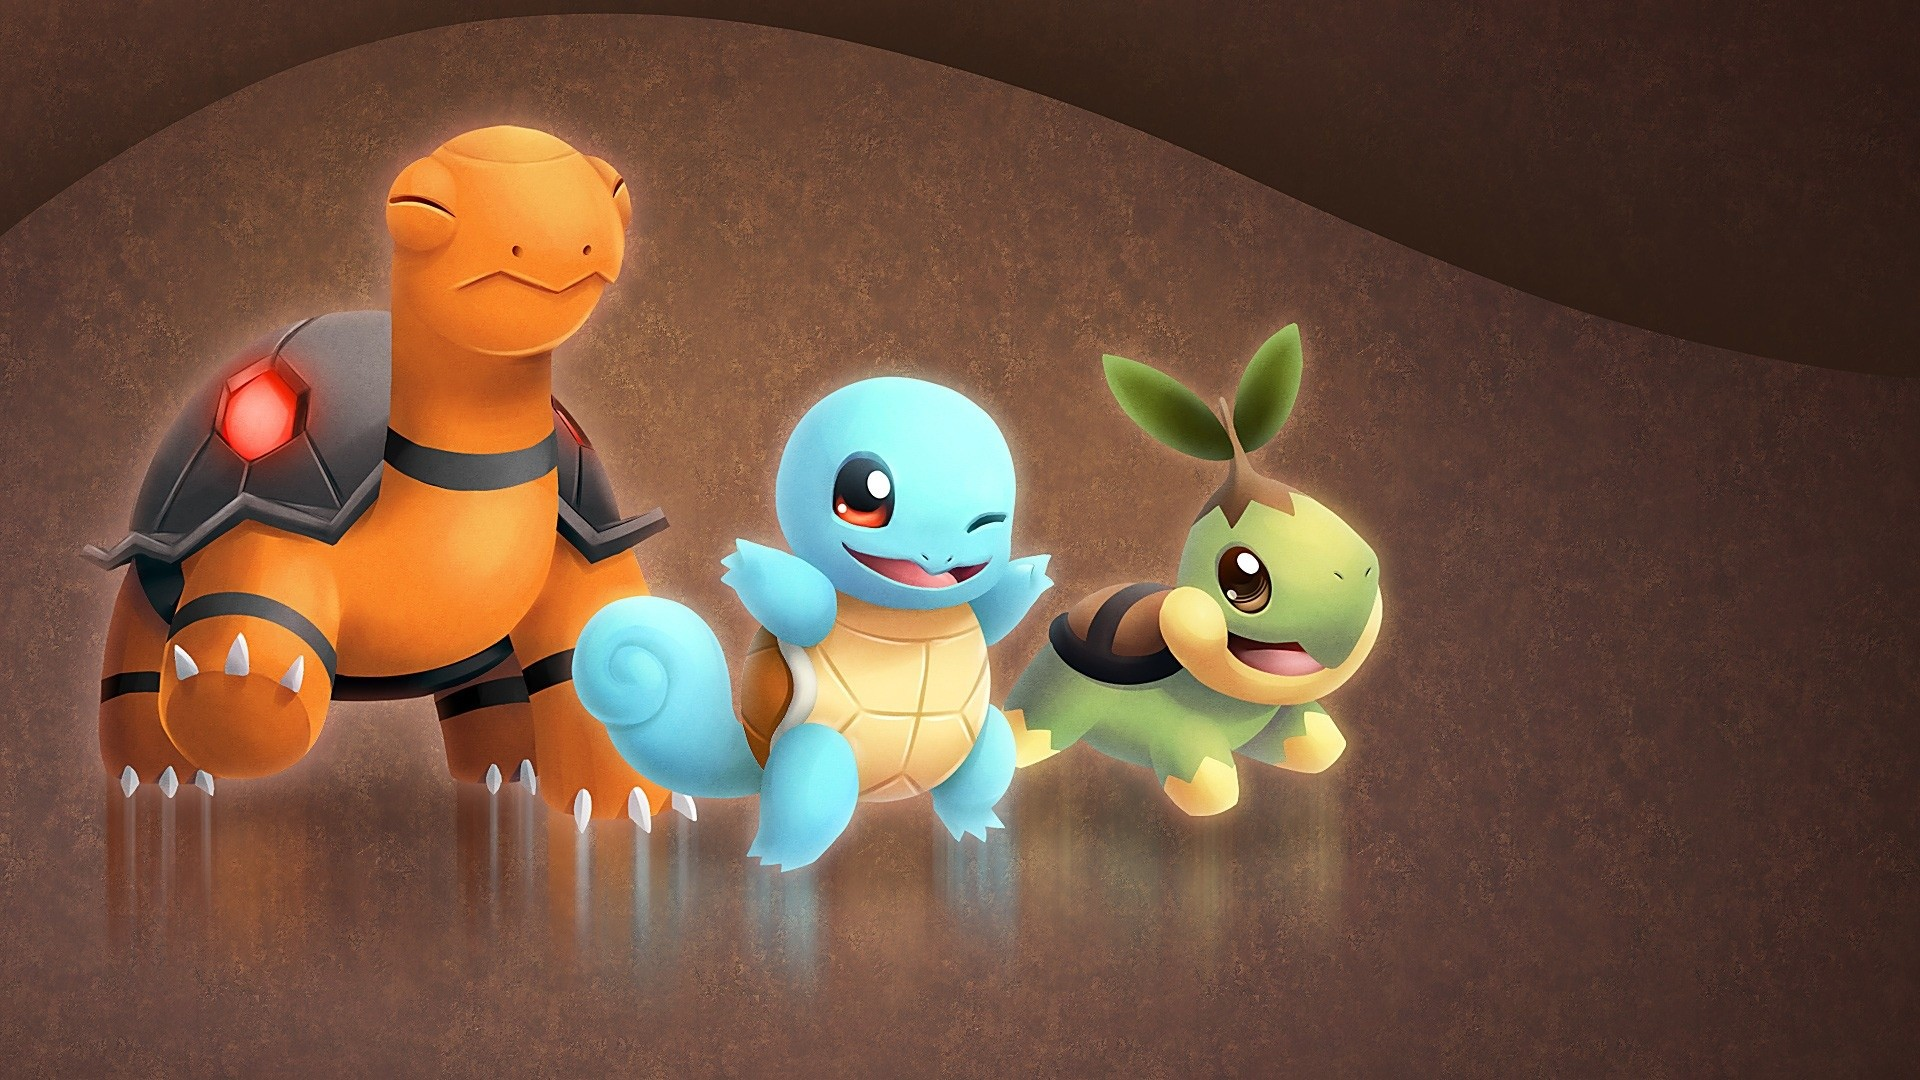 1920x1080 Cute Pokemon HD Wallpaper Download Free.